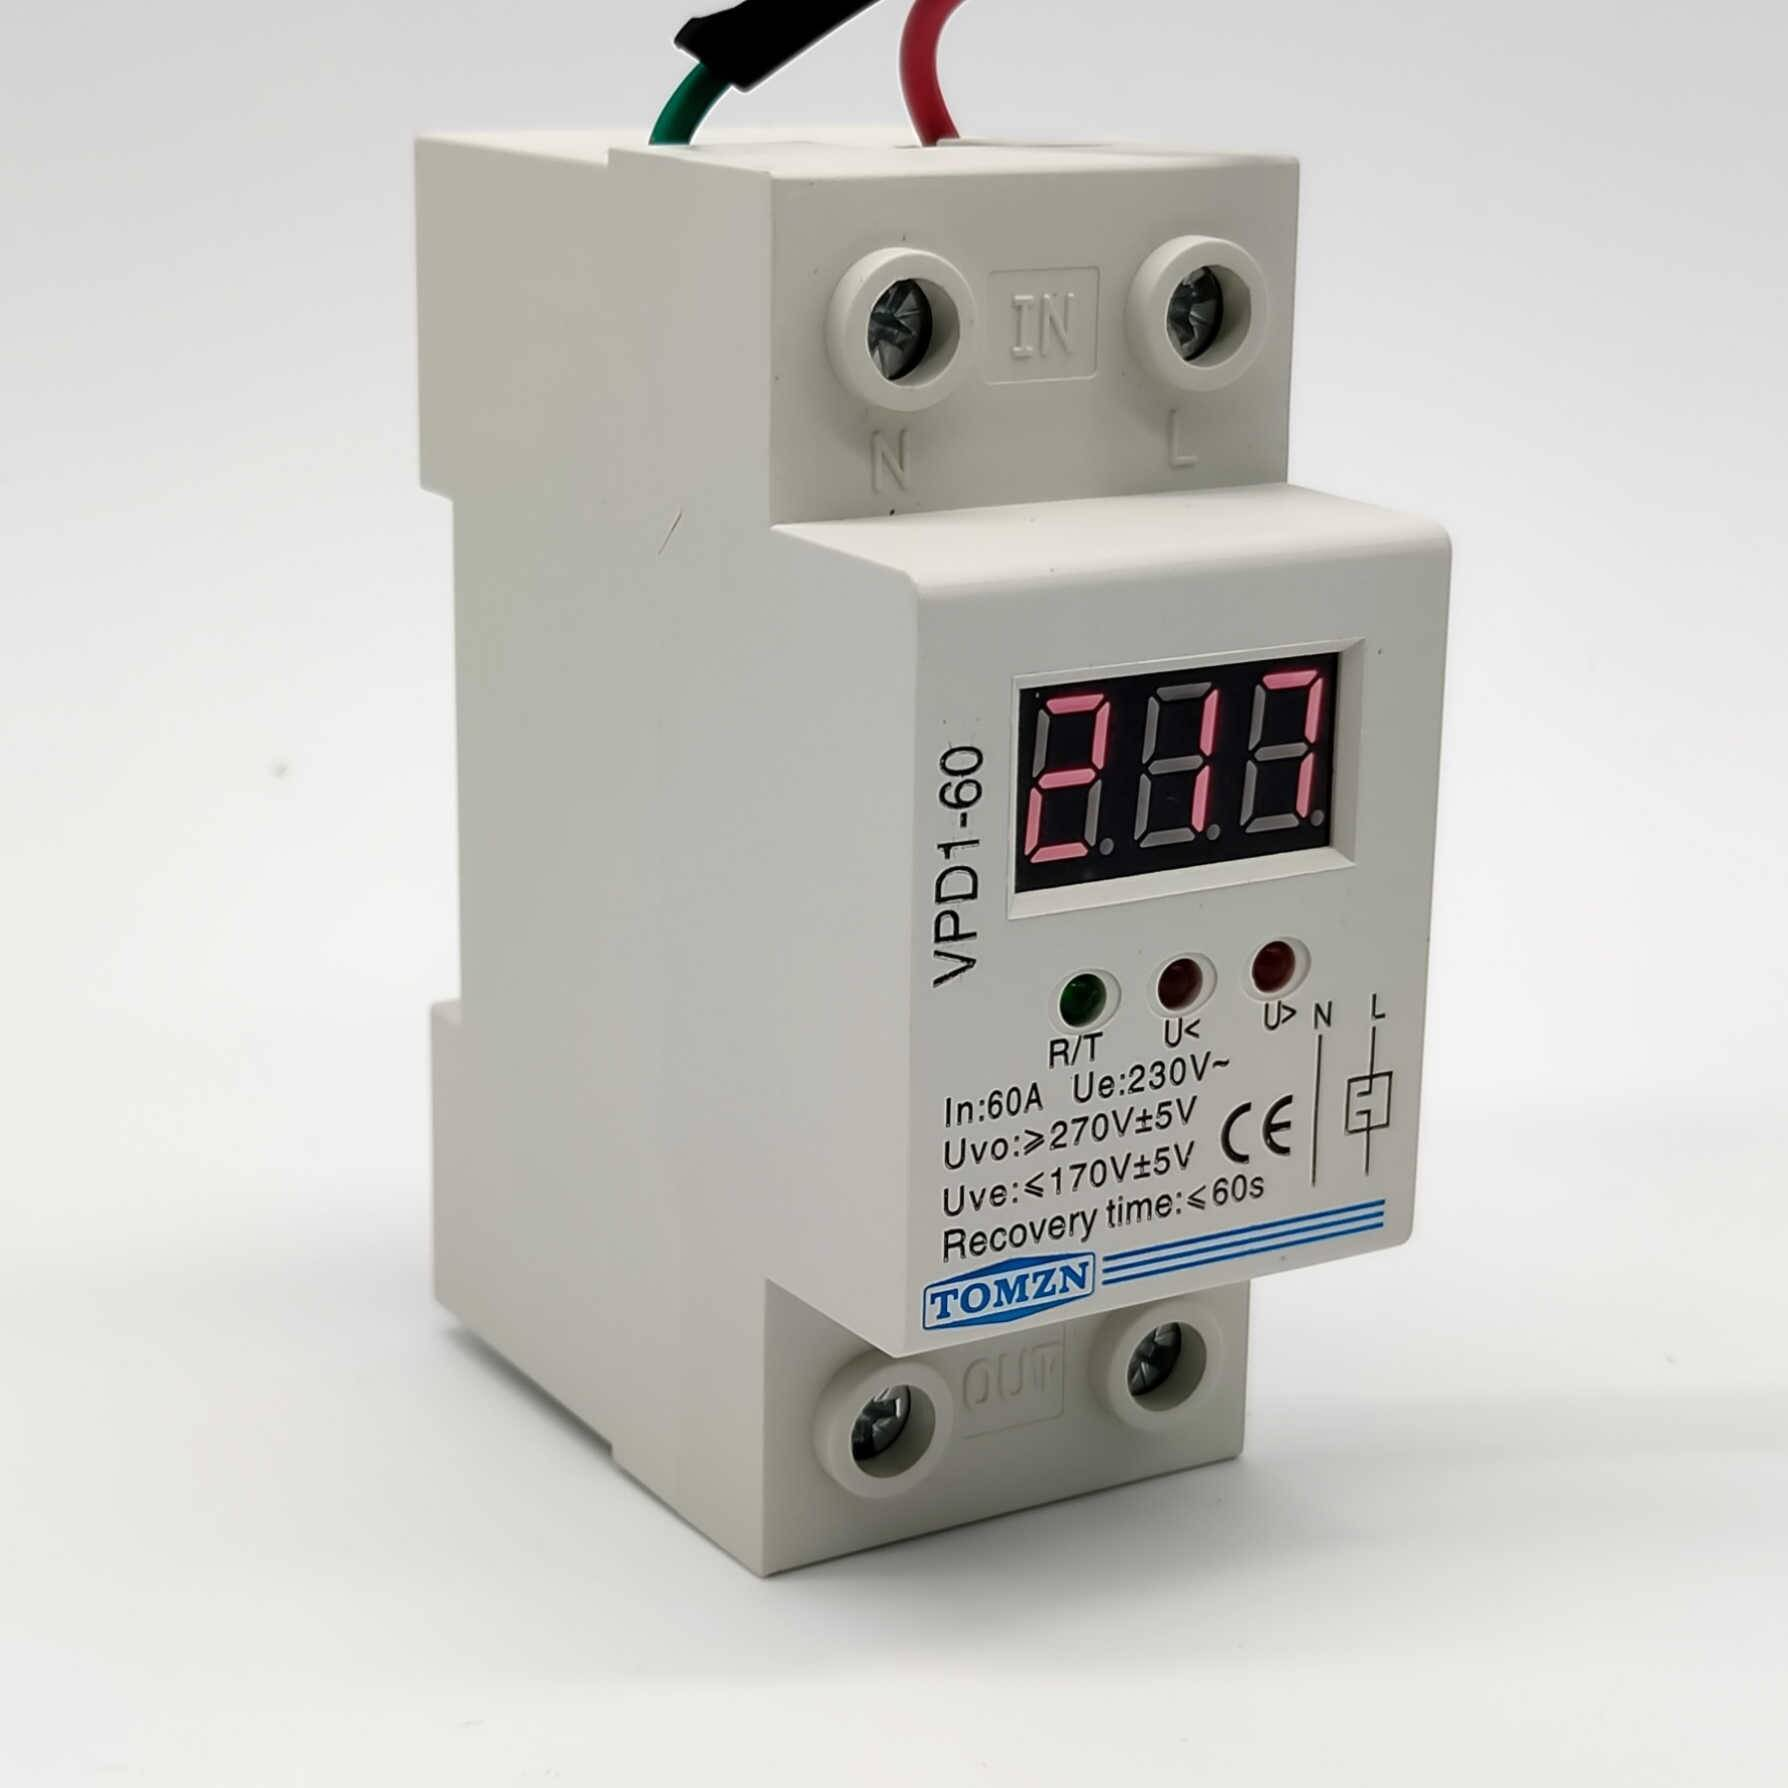 TOMZN VPD1 40A 60A 220V over and under voltage protection protective device relay with Voltmeter in Pakistan